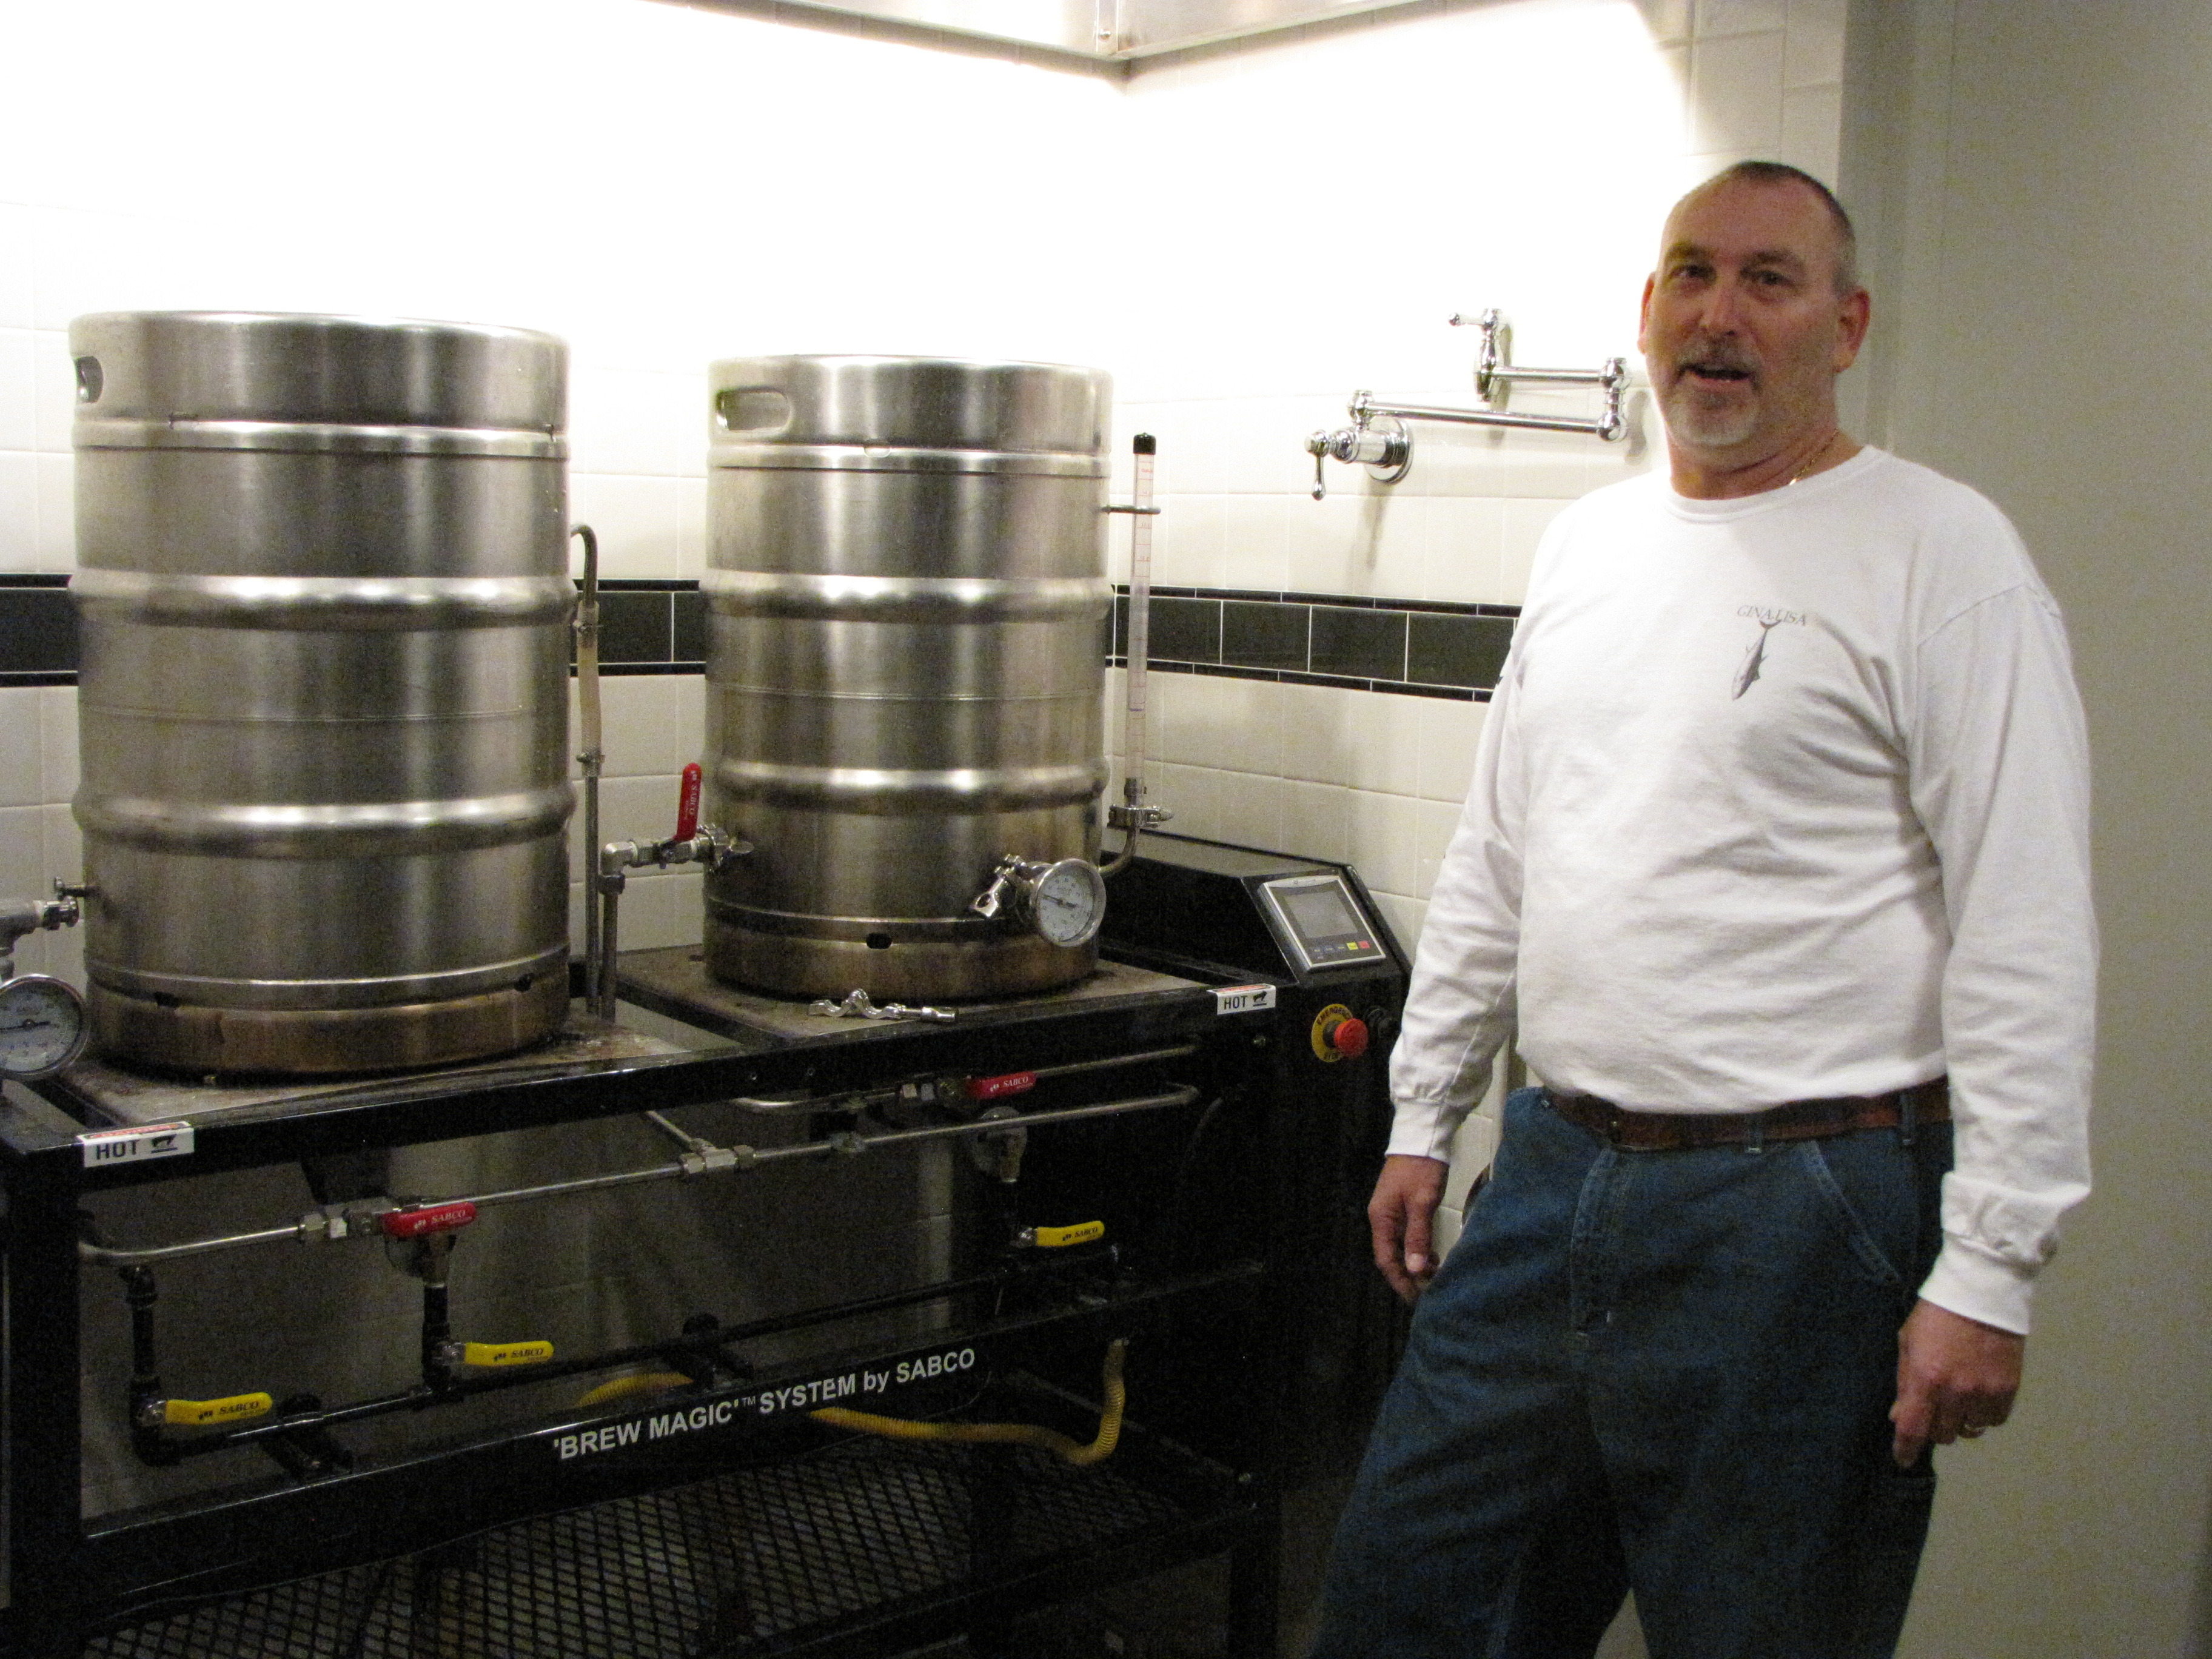 3ab44531aa394248e545_Mike_in_brewery.jpg